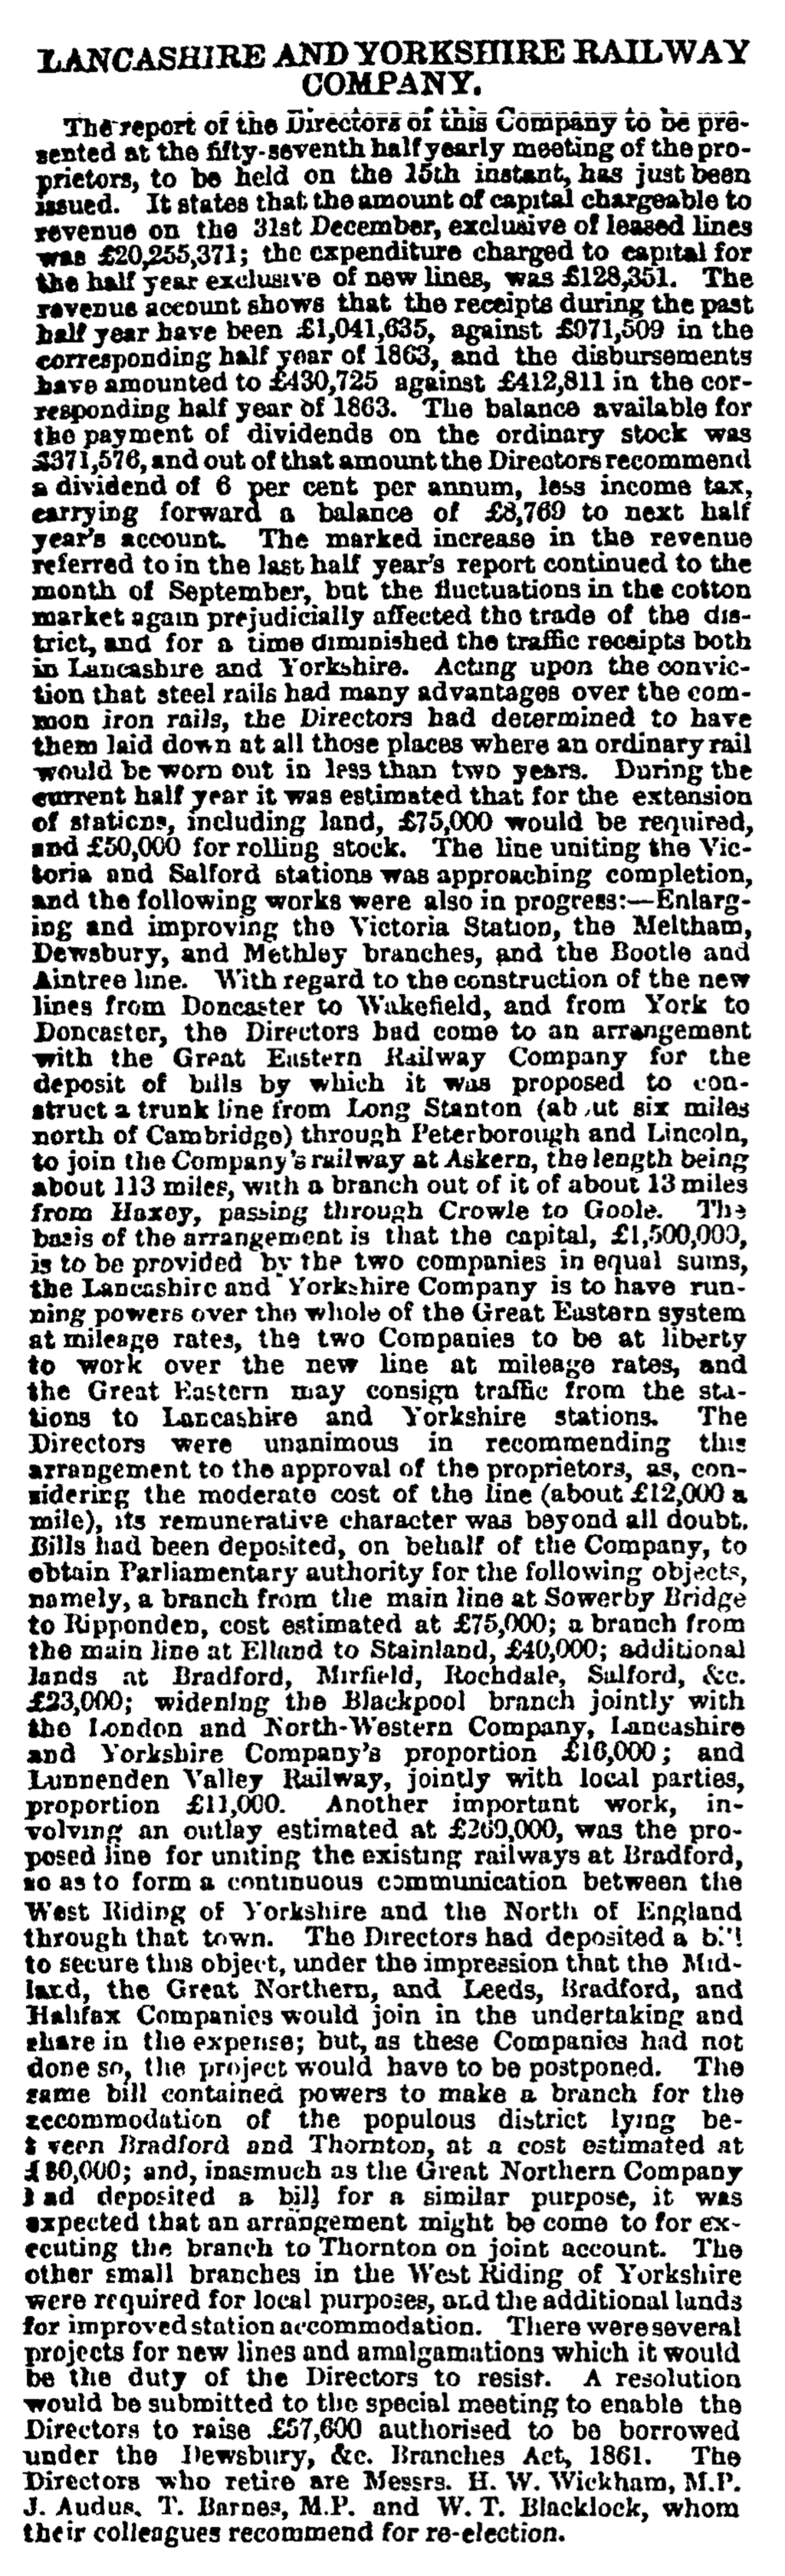 Lancashire and Yorkshire Railway Company - Manchester Guardian (1828-1900) 09 Feb 1865